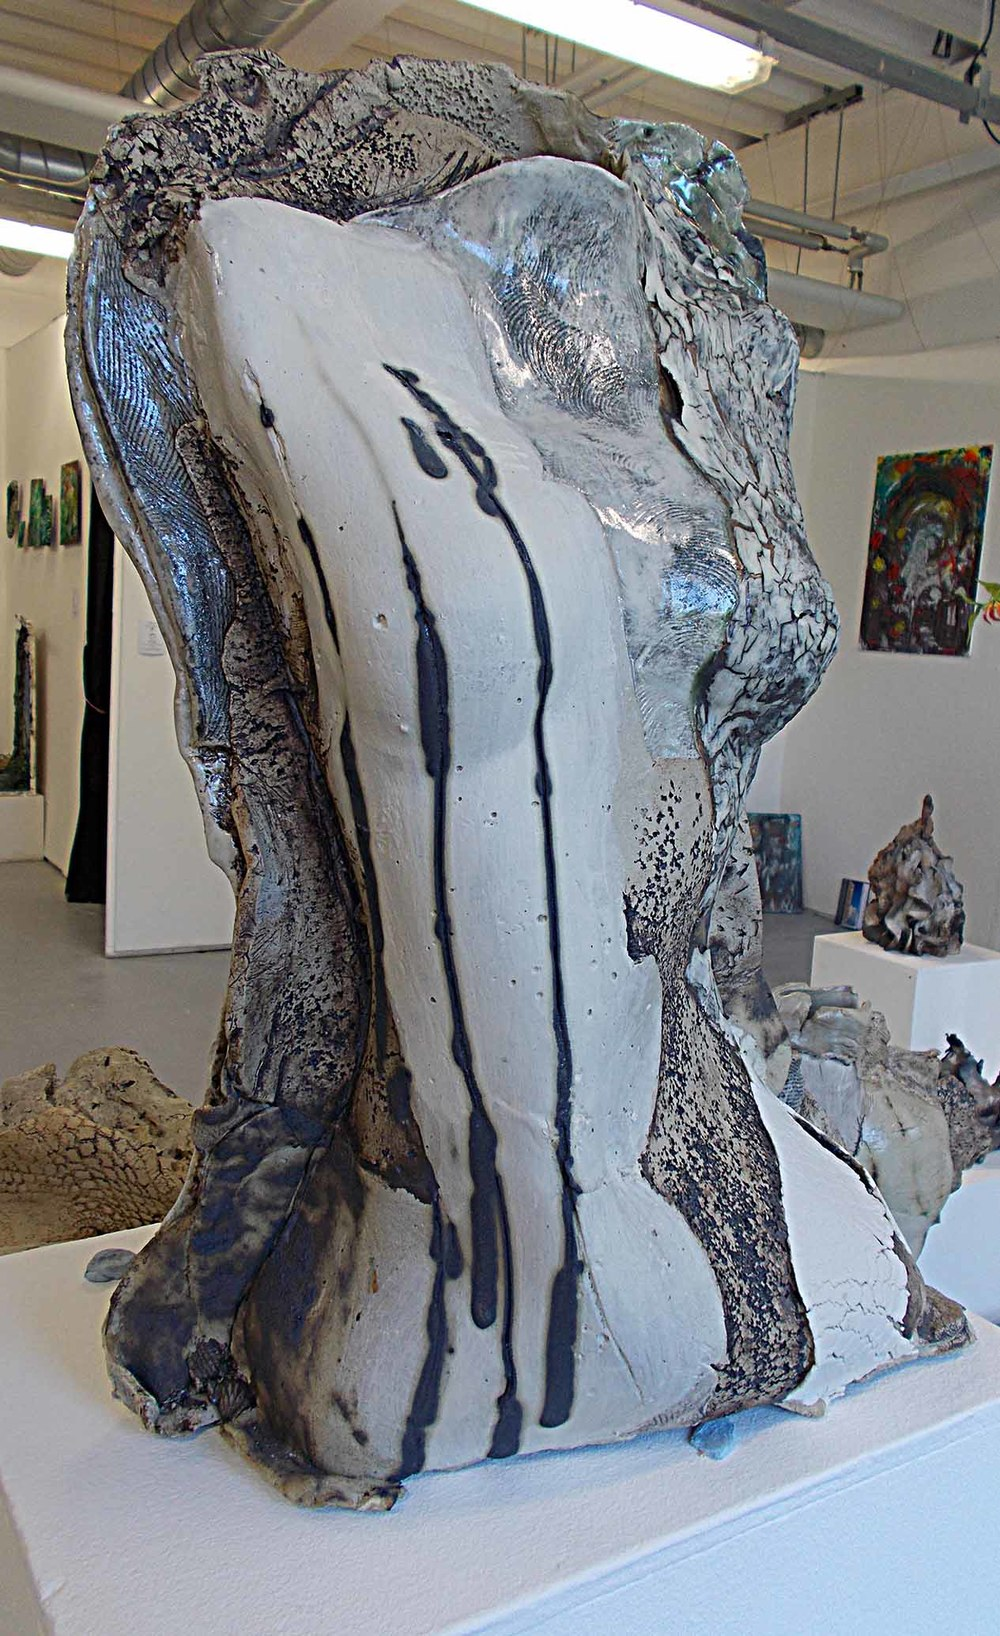 Gail Darke Metaphors of aging Ceramic 13-14.jpg